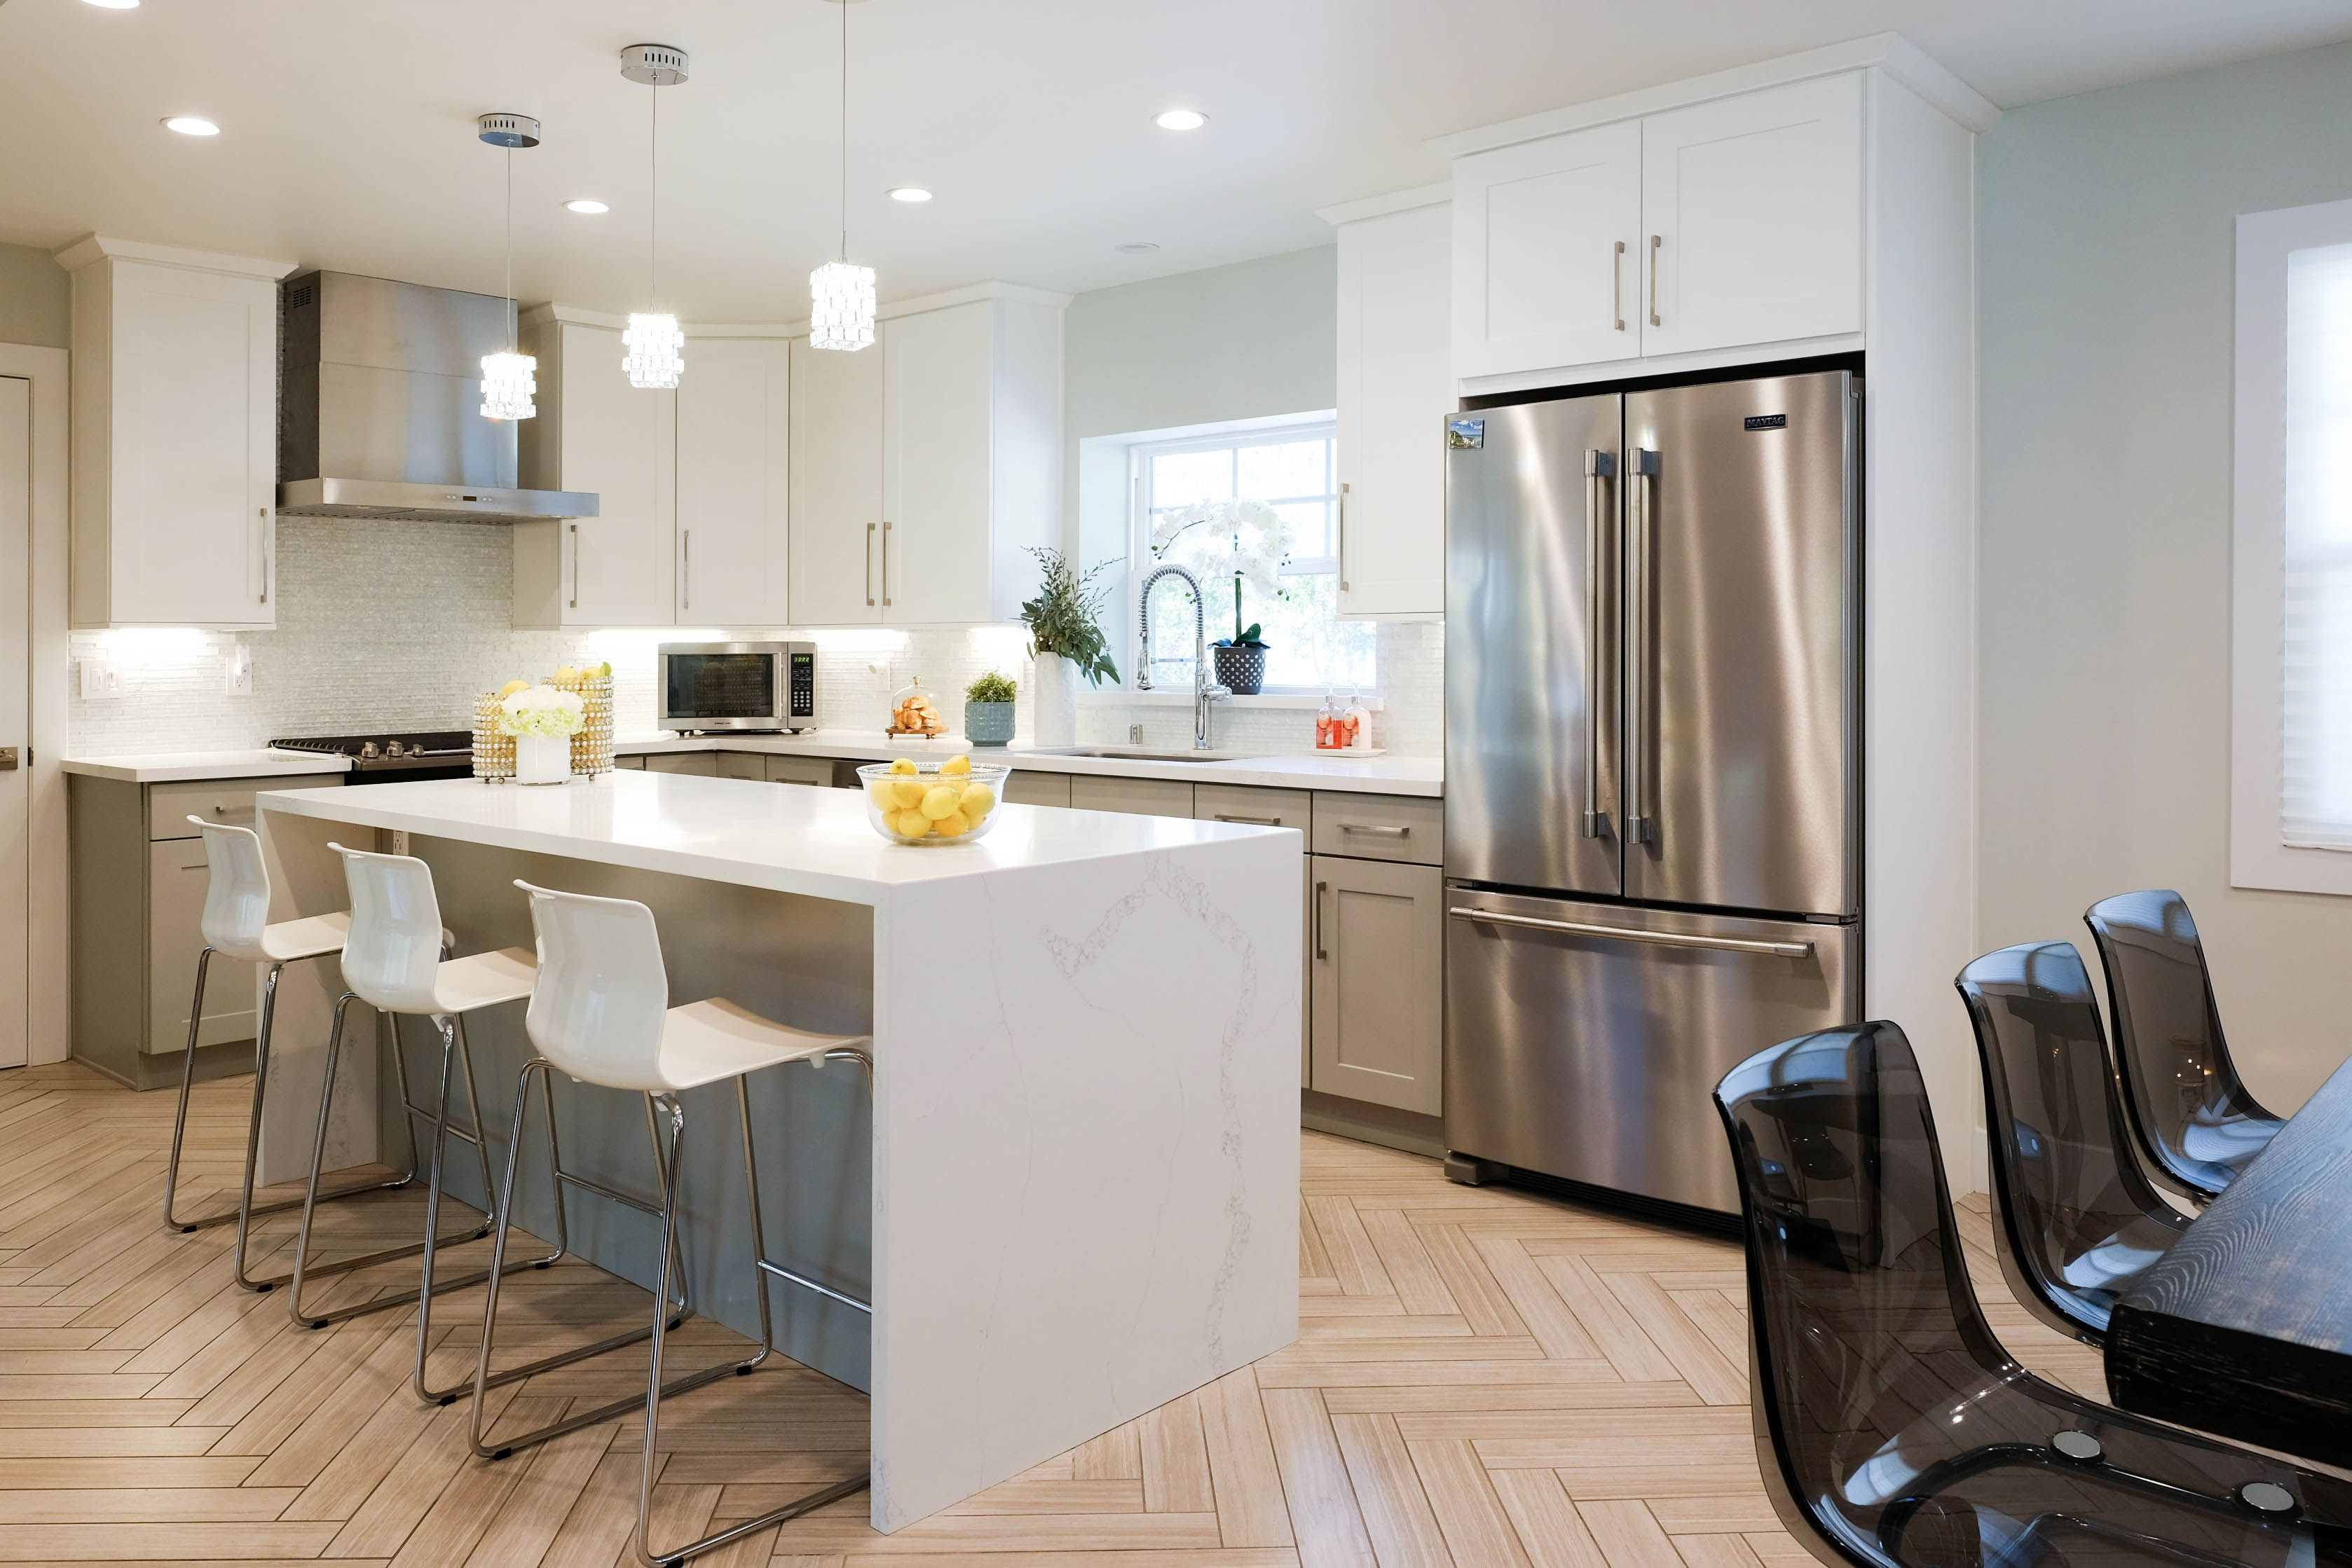 White Shaker Cabinets By Cabinet City Arcadia Ca Kitchen Shaker Cabinets White White Shaker Cabinets Quality Kitchen Cabinets Shaker Cabinets